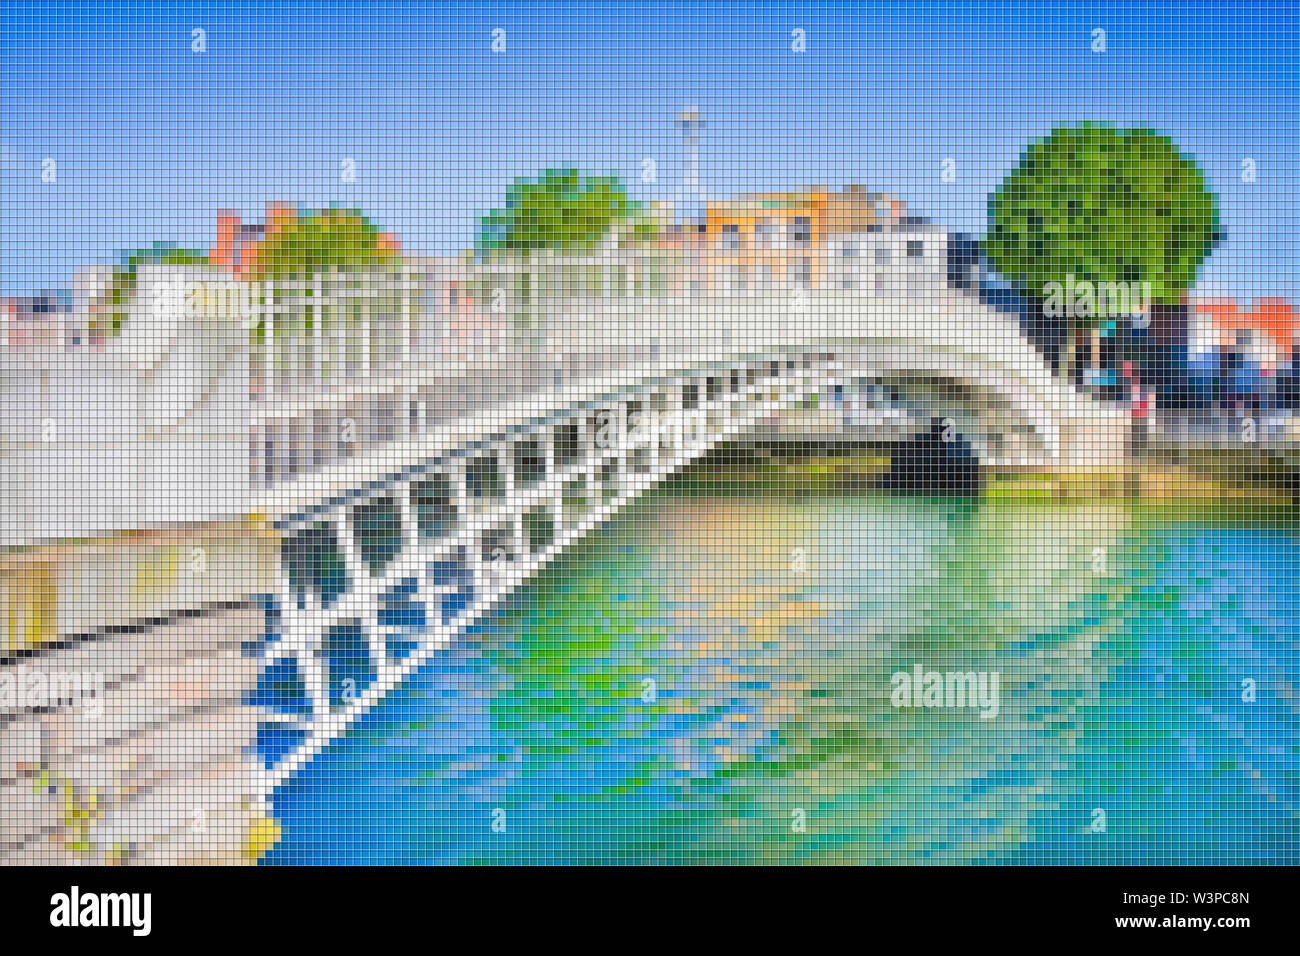 The most famous bridge in Dublin called 'Half penny bridge' due to the toll charged for the passage - Concept image with pixelation effect - Stock Image